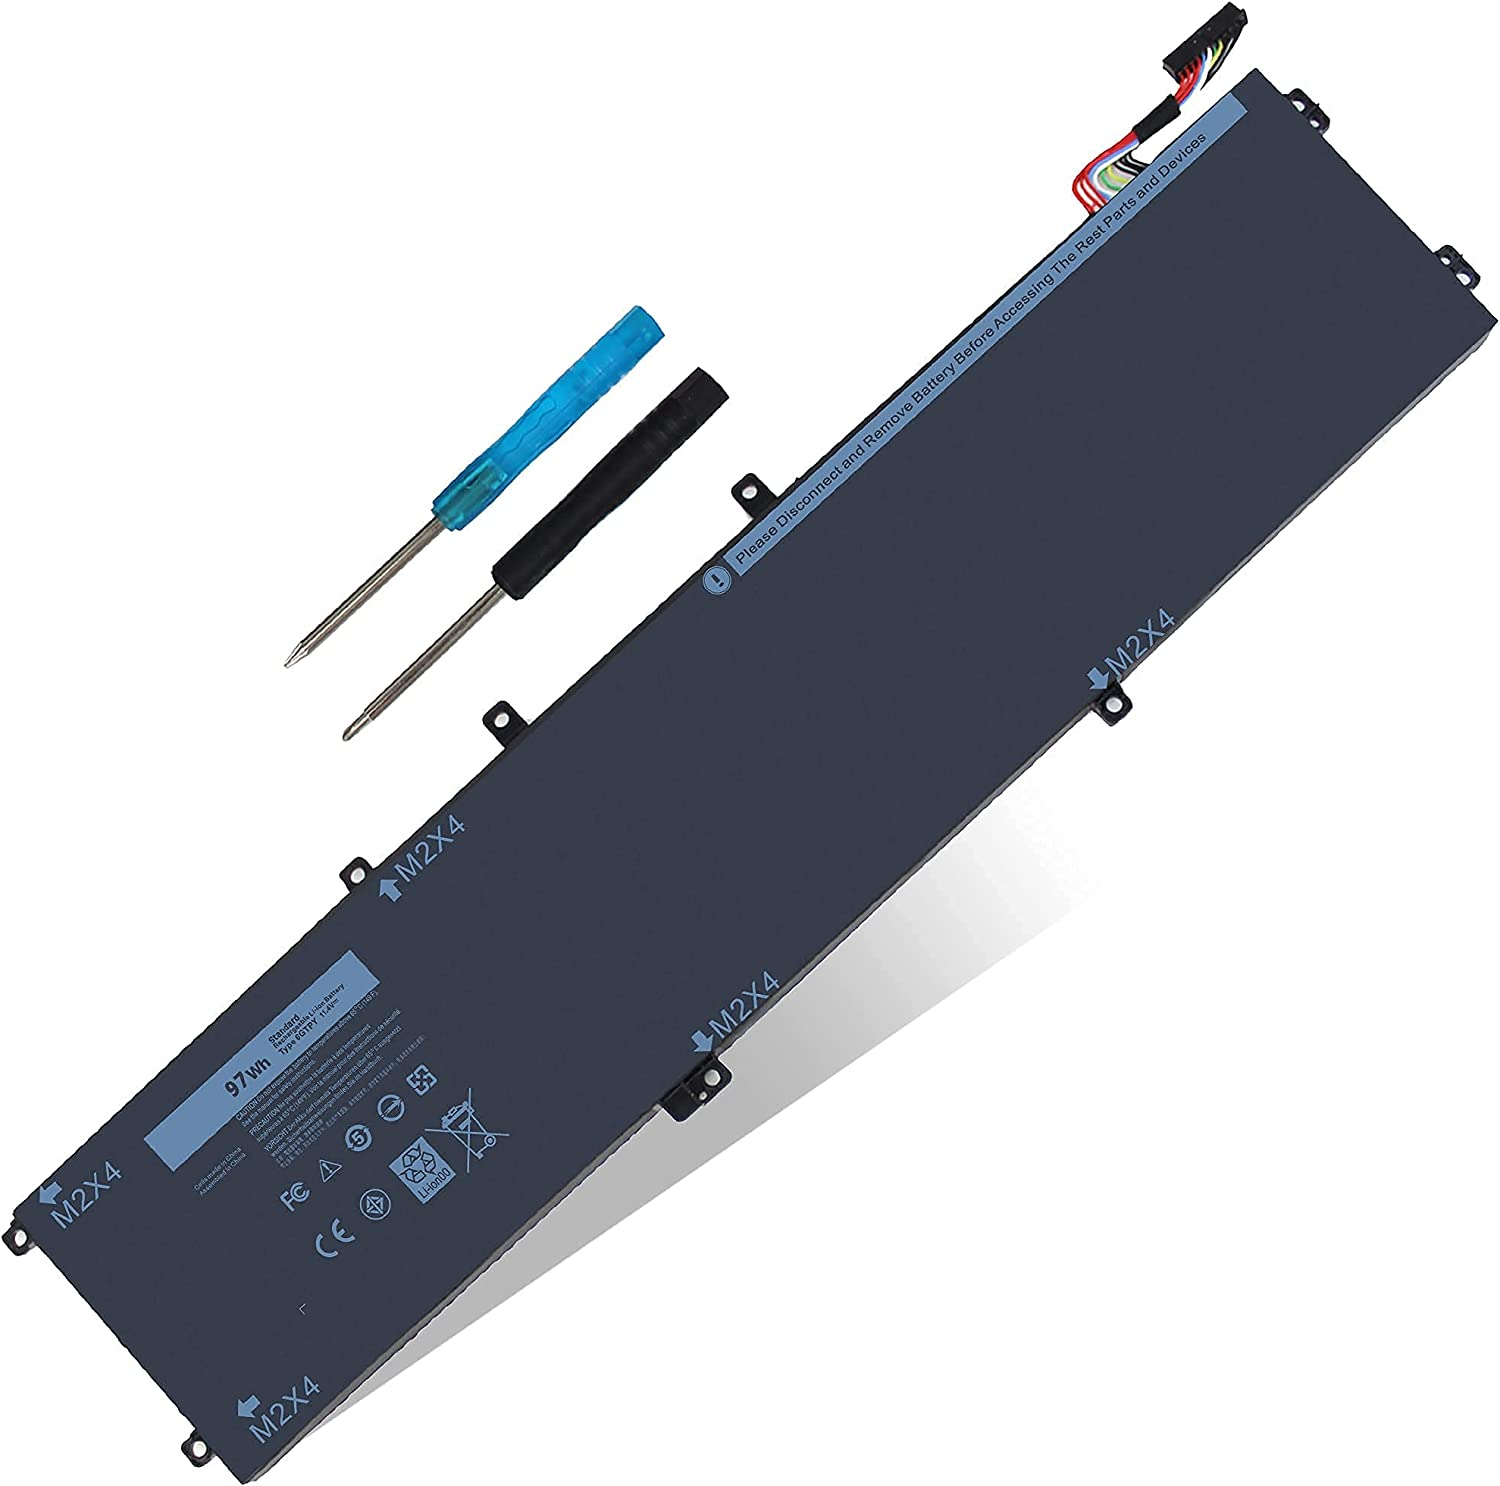 97WH Mail order cheap 6GTPY Battery for Max 63% OFF Dell 9560 XPS 15-9560-D1 15 15-9560-D1745